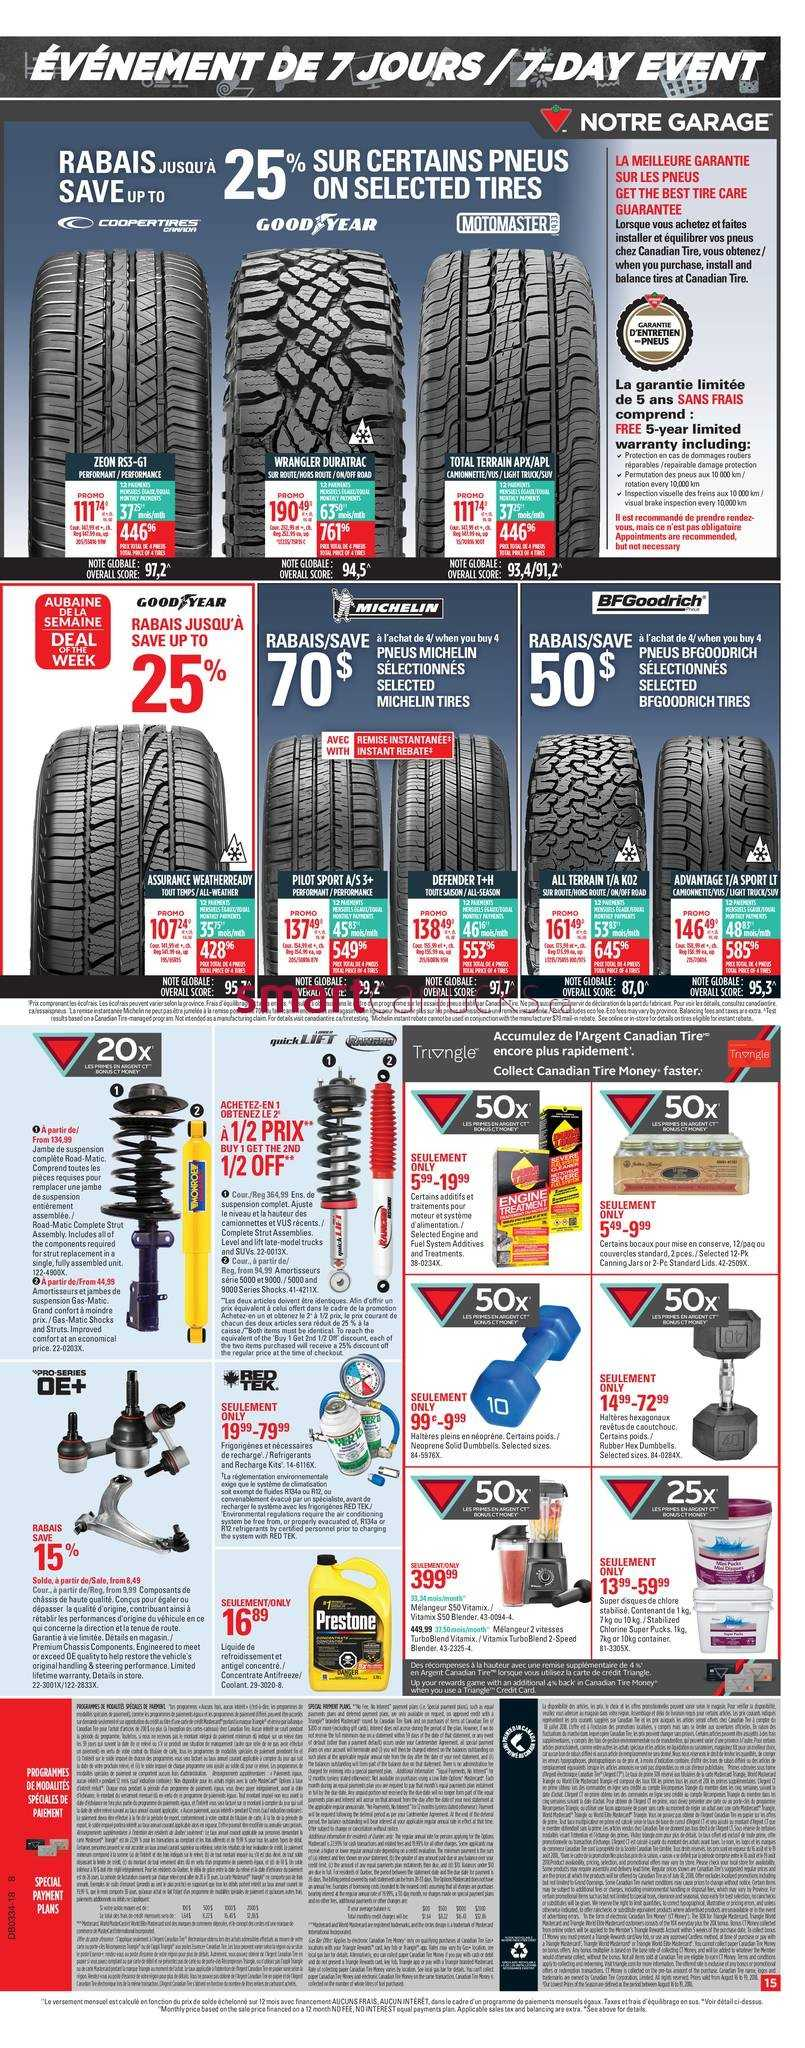 competitive advantage for canadian tire Canadian tire information and links to canadian tire canadian online shopping  canadian tire's competitive advantage is created through the power of these.